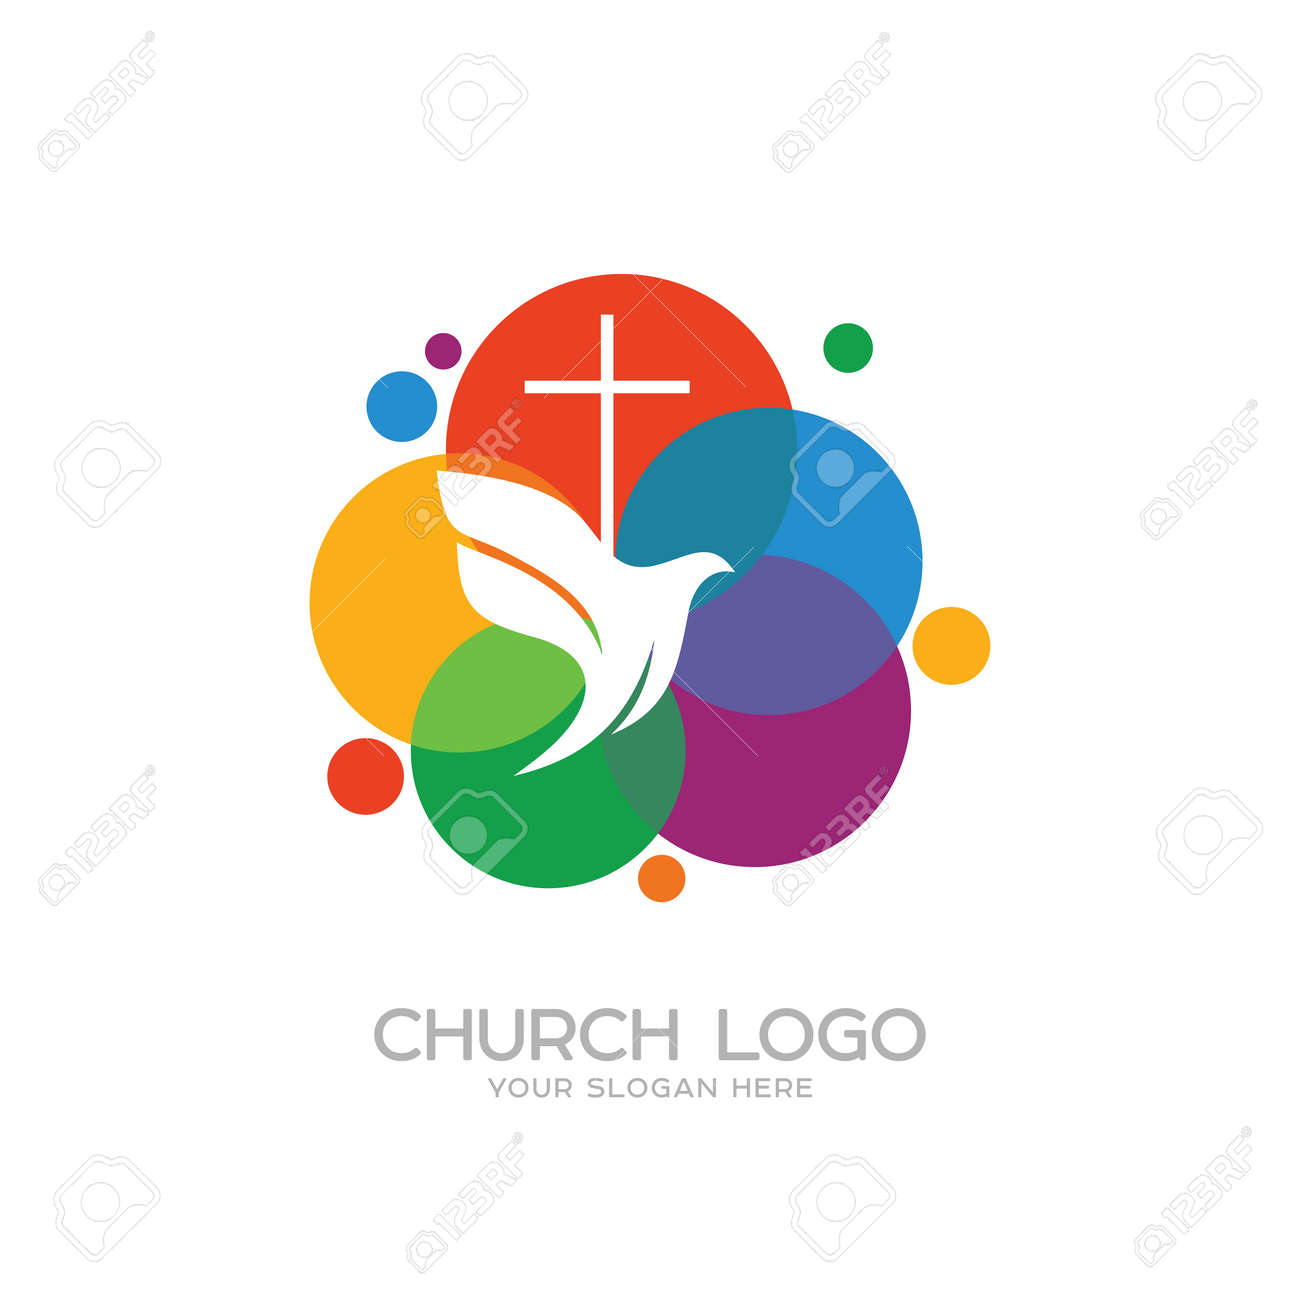 Church logo christian symbols the cross of jesus and the dove church logo christian symbols the cross of jesus and the dove stock vector altavistaventures Choice Image